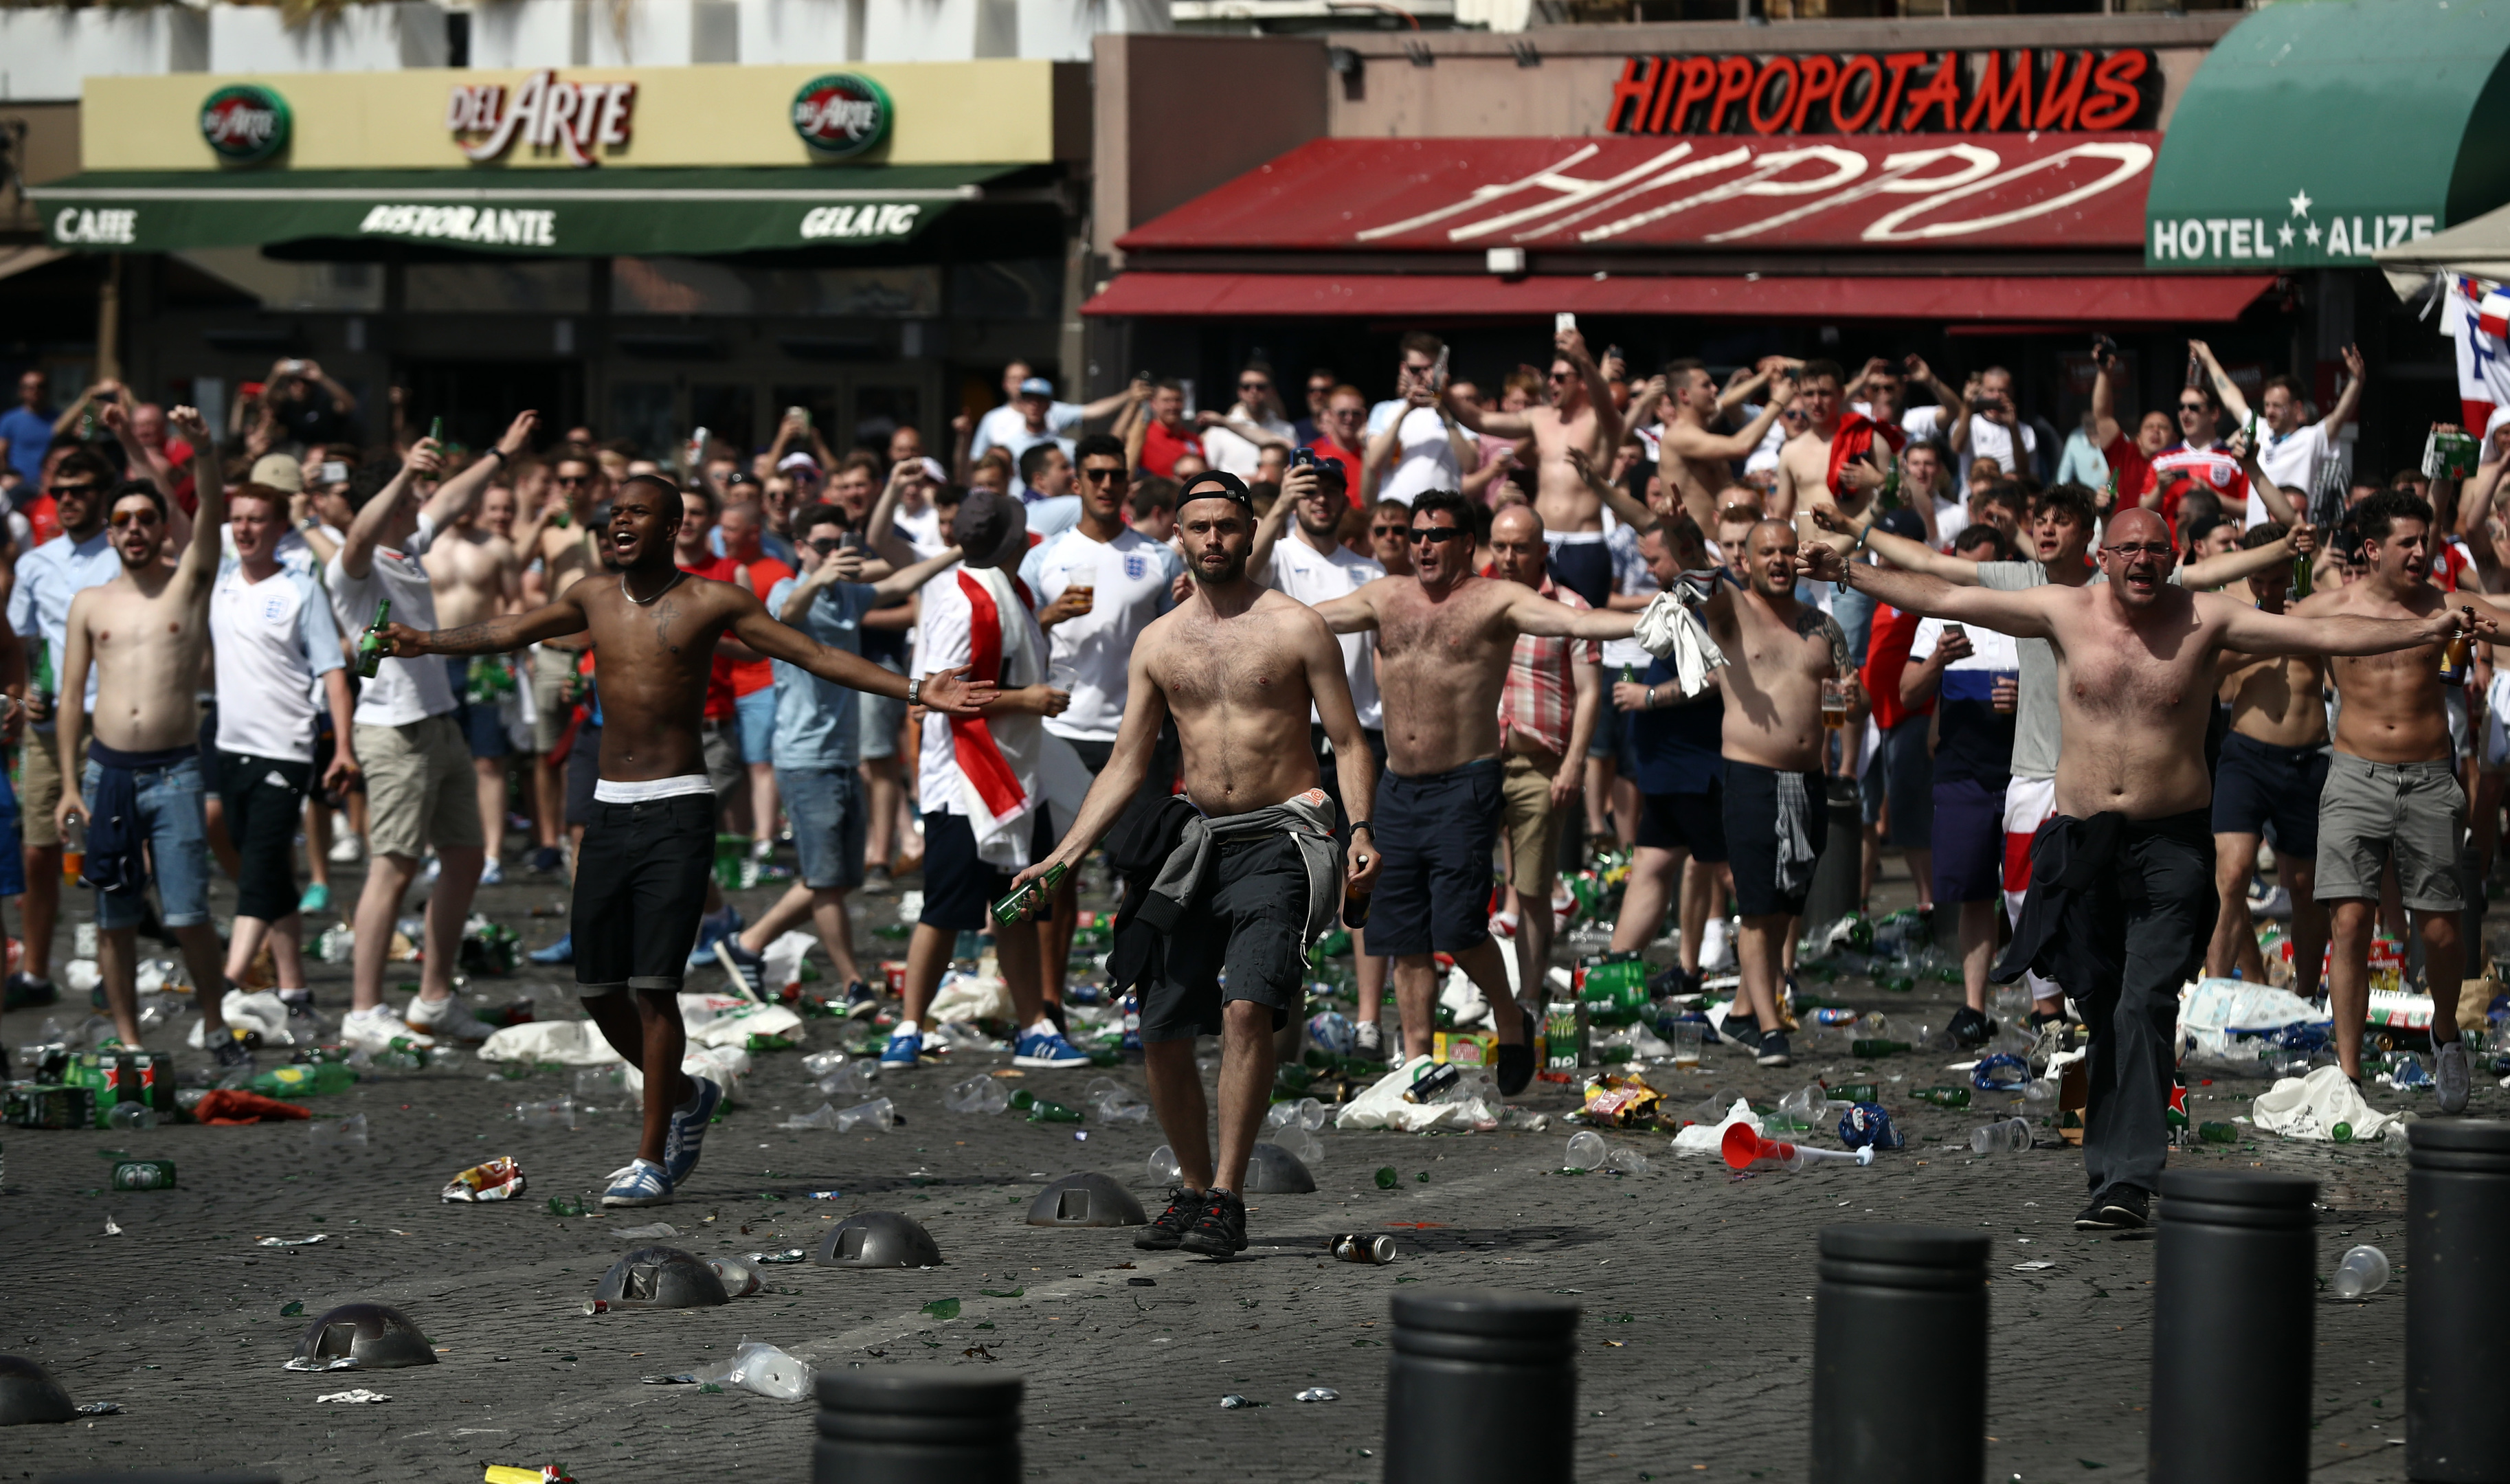 England fans throw bottles and clash with police ahead of the game against Russia on Saturday.